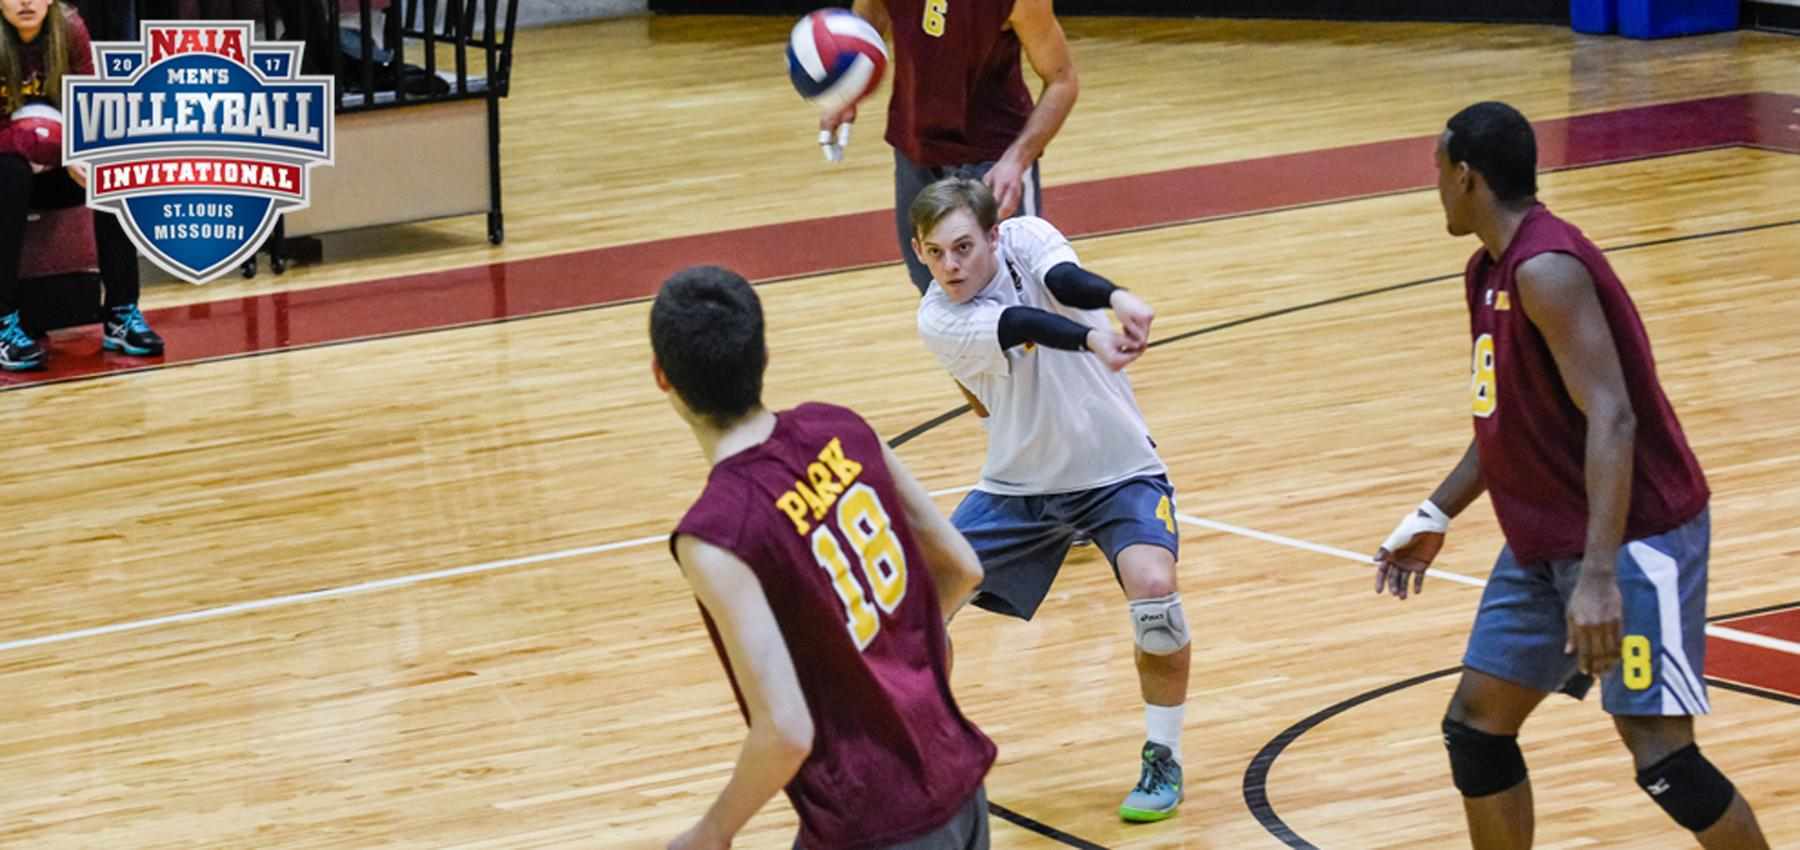 The Pirates' Billy Crow had a big night with 11 digs in the win over the Spartans.